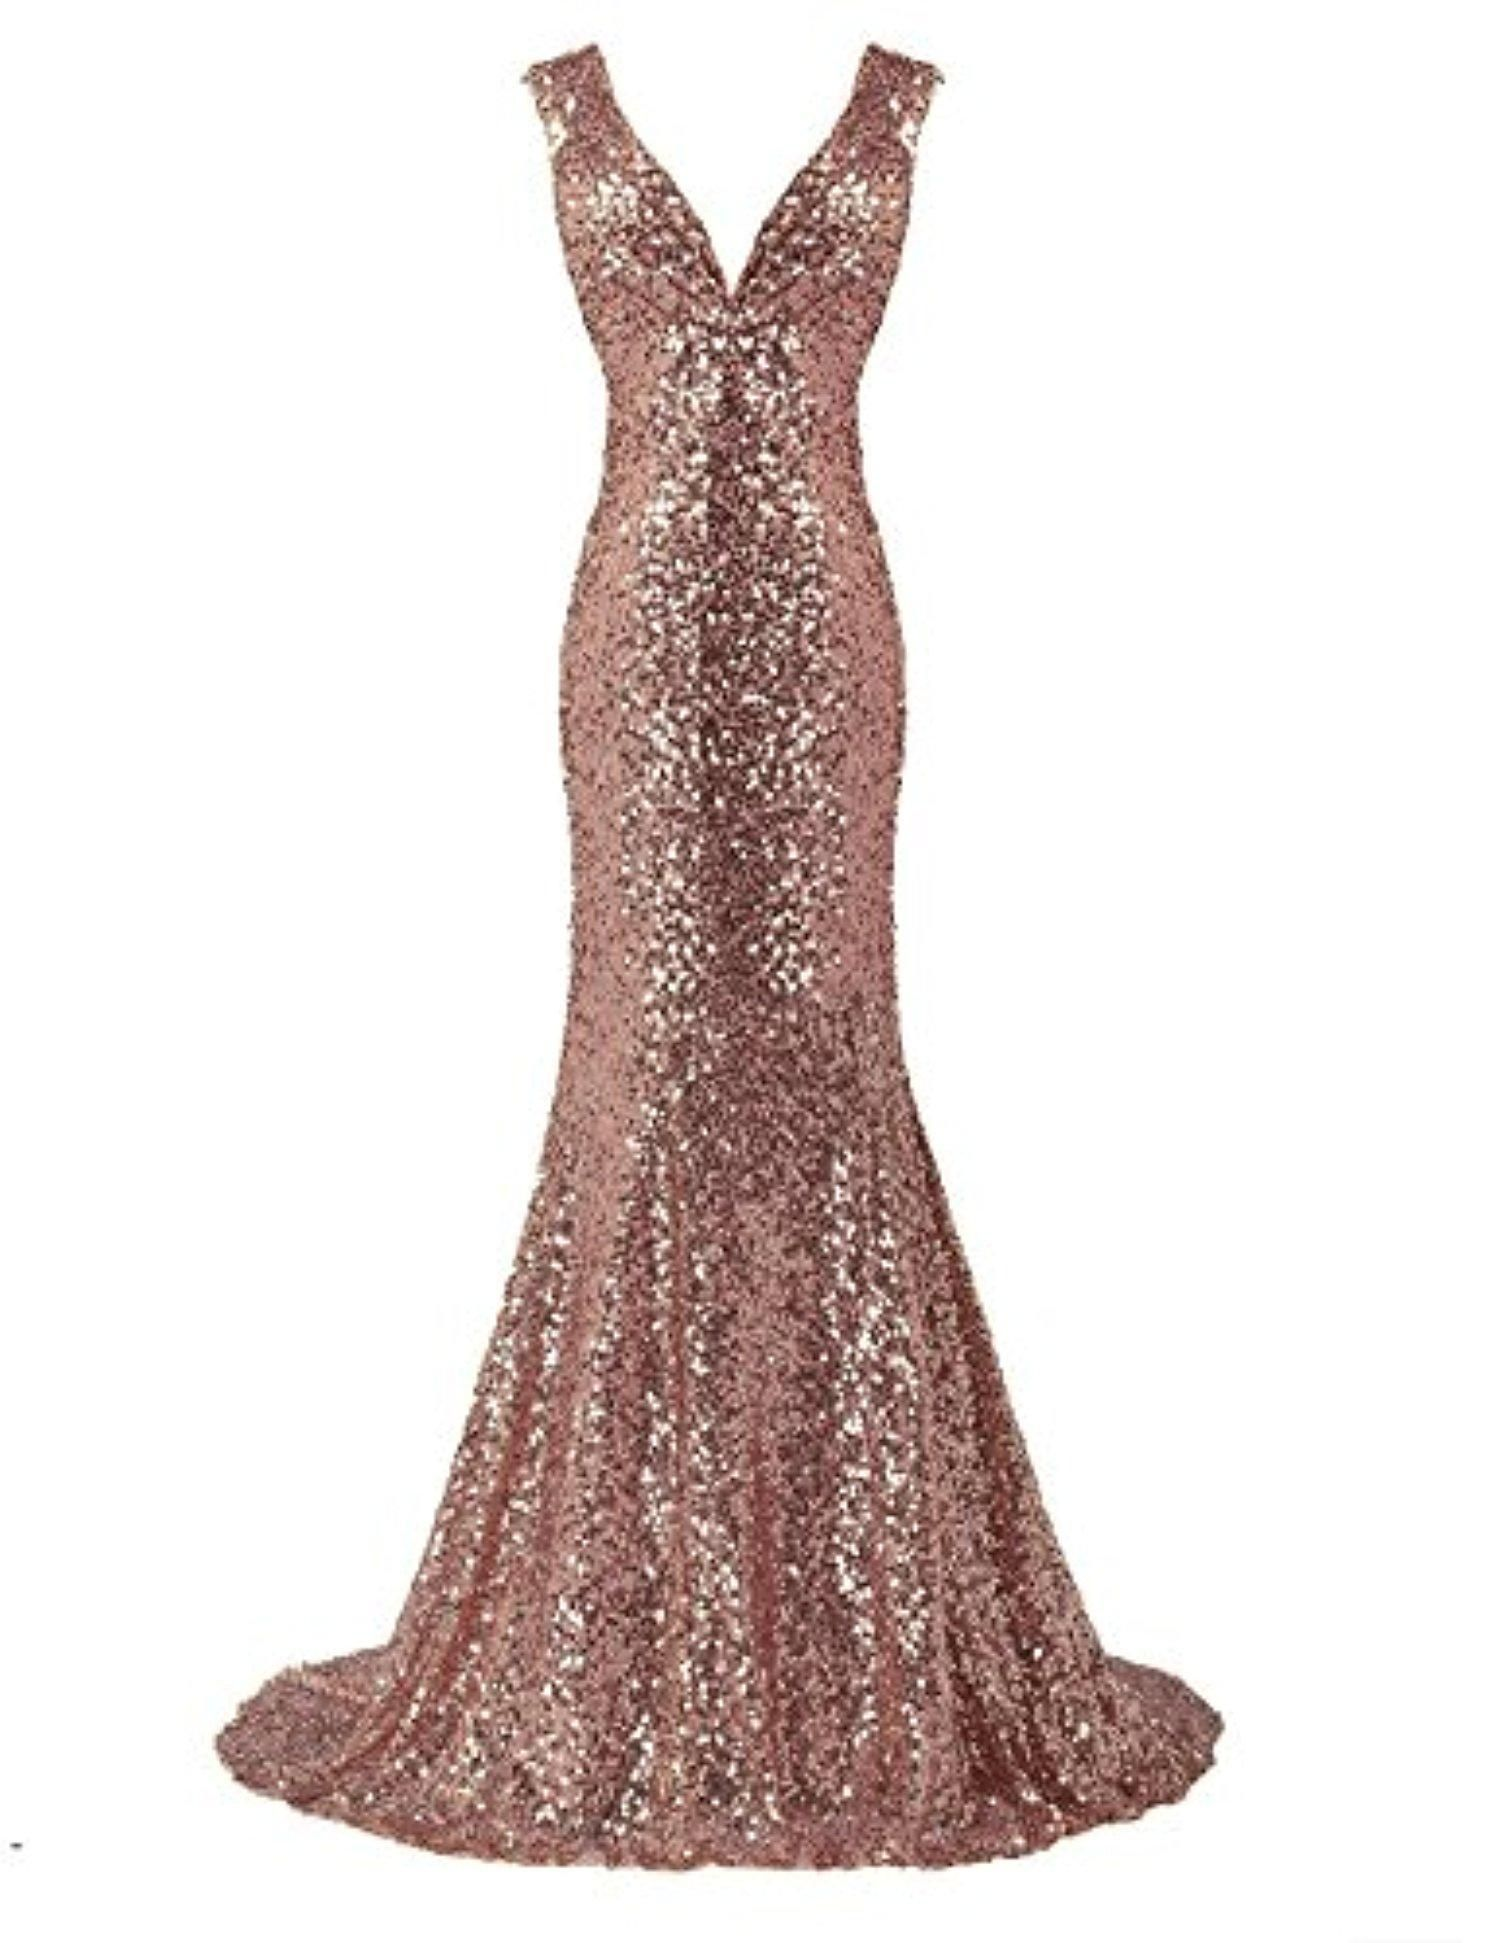 3beb354aa6a Belle House Rose Gold Sequin Backless Wedding Guest Dress Sparkle Prom Gown  - Brought to you by Avarsha.com